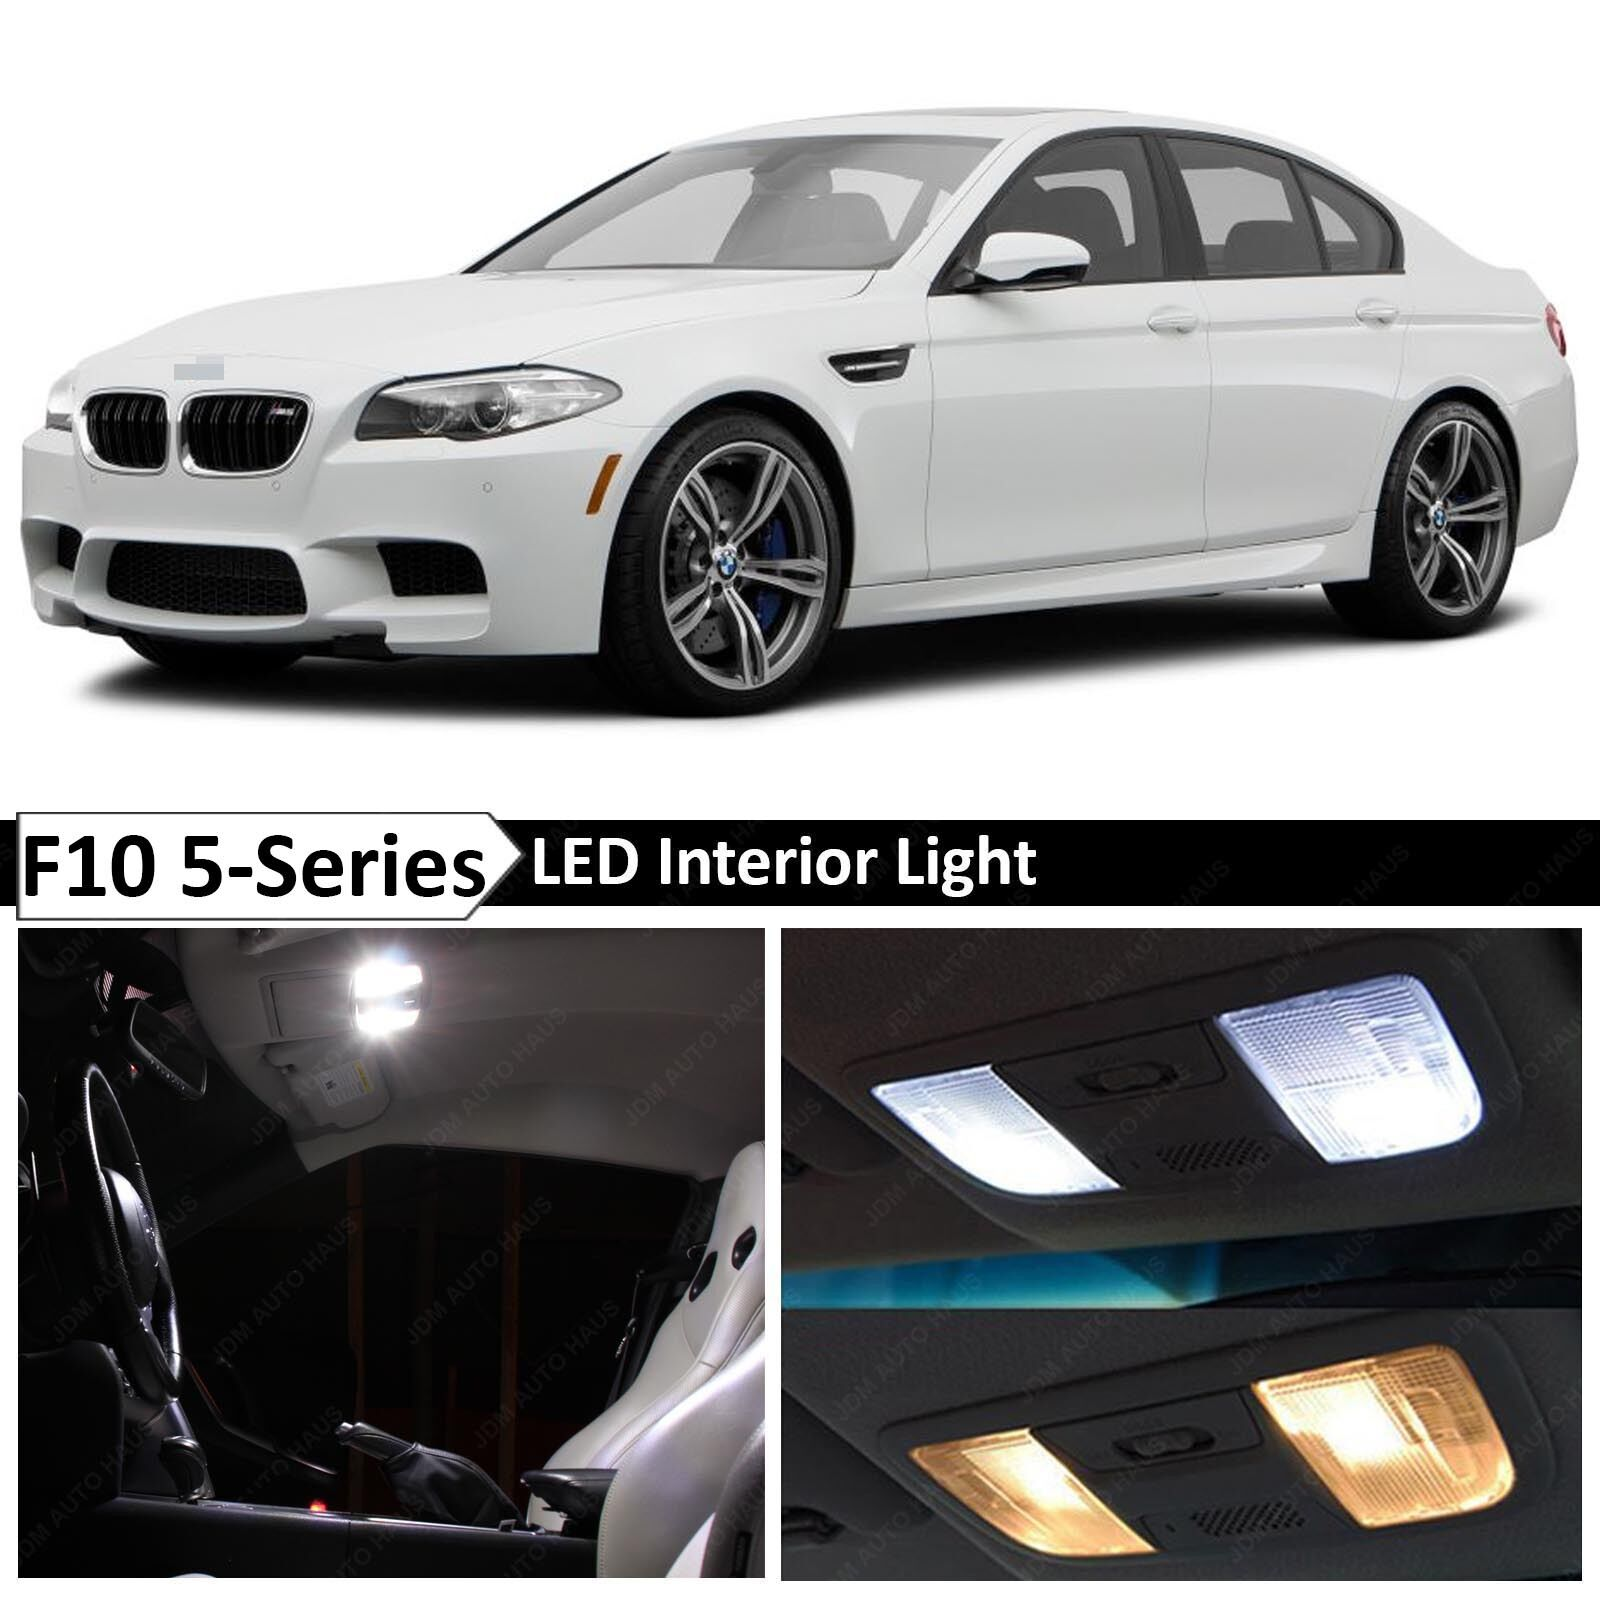 hight resolution of details about white interior led light package for 2011 2015 bmw 5 series m5 535i 550i f10